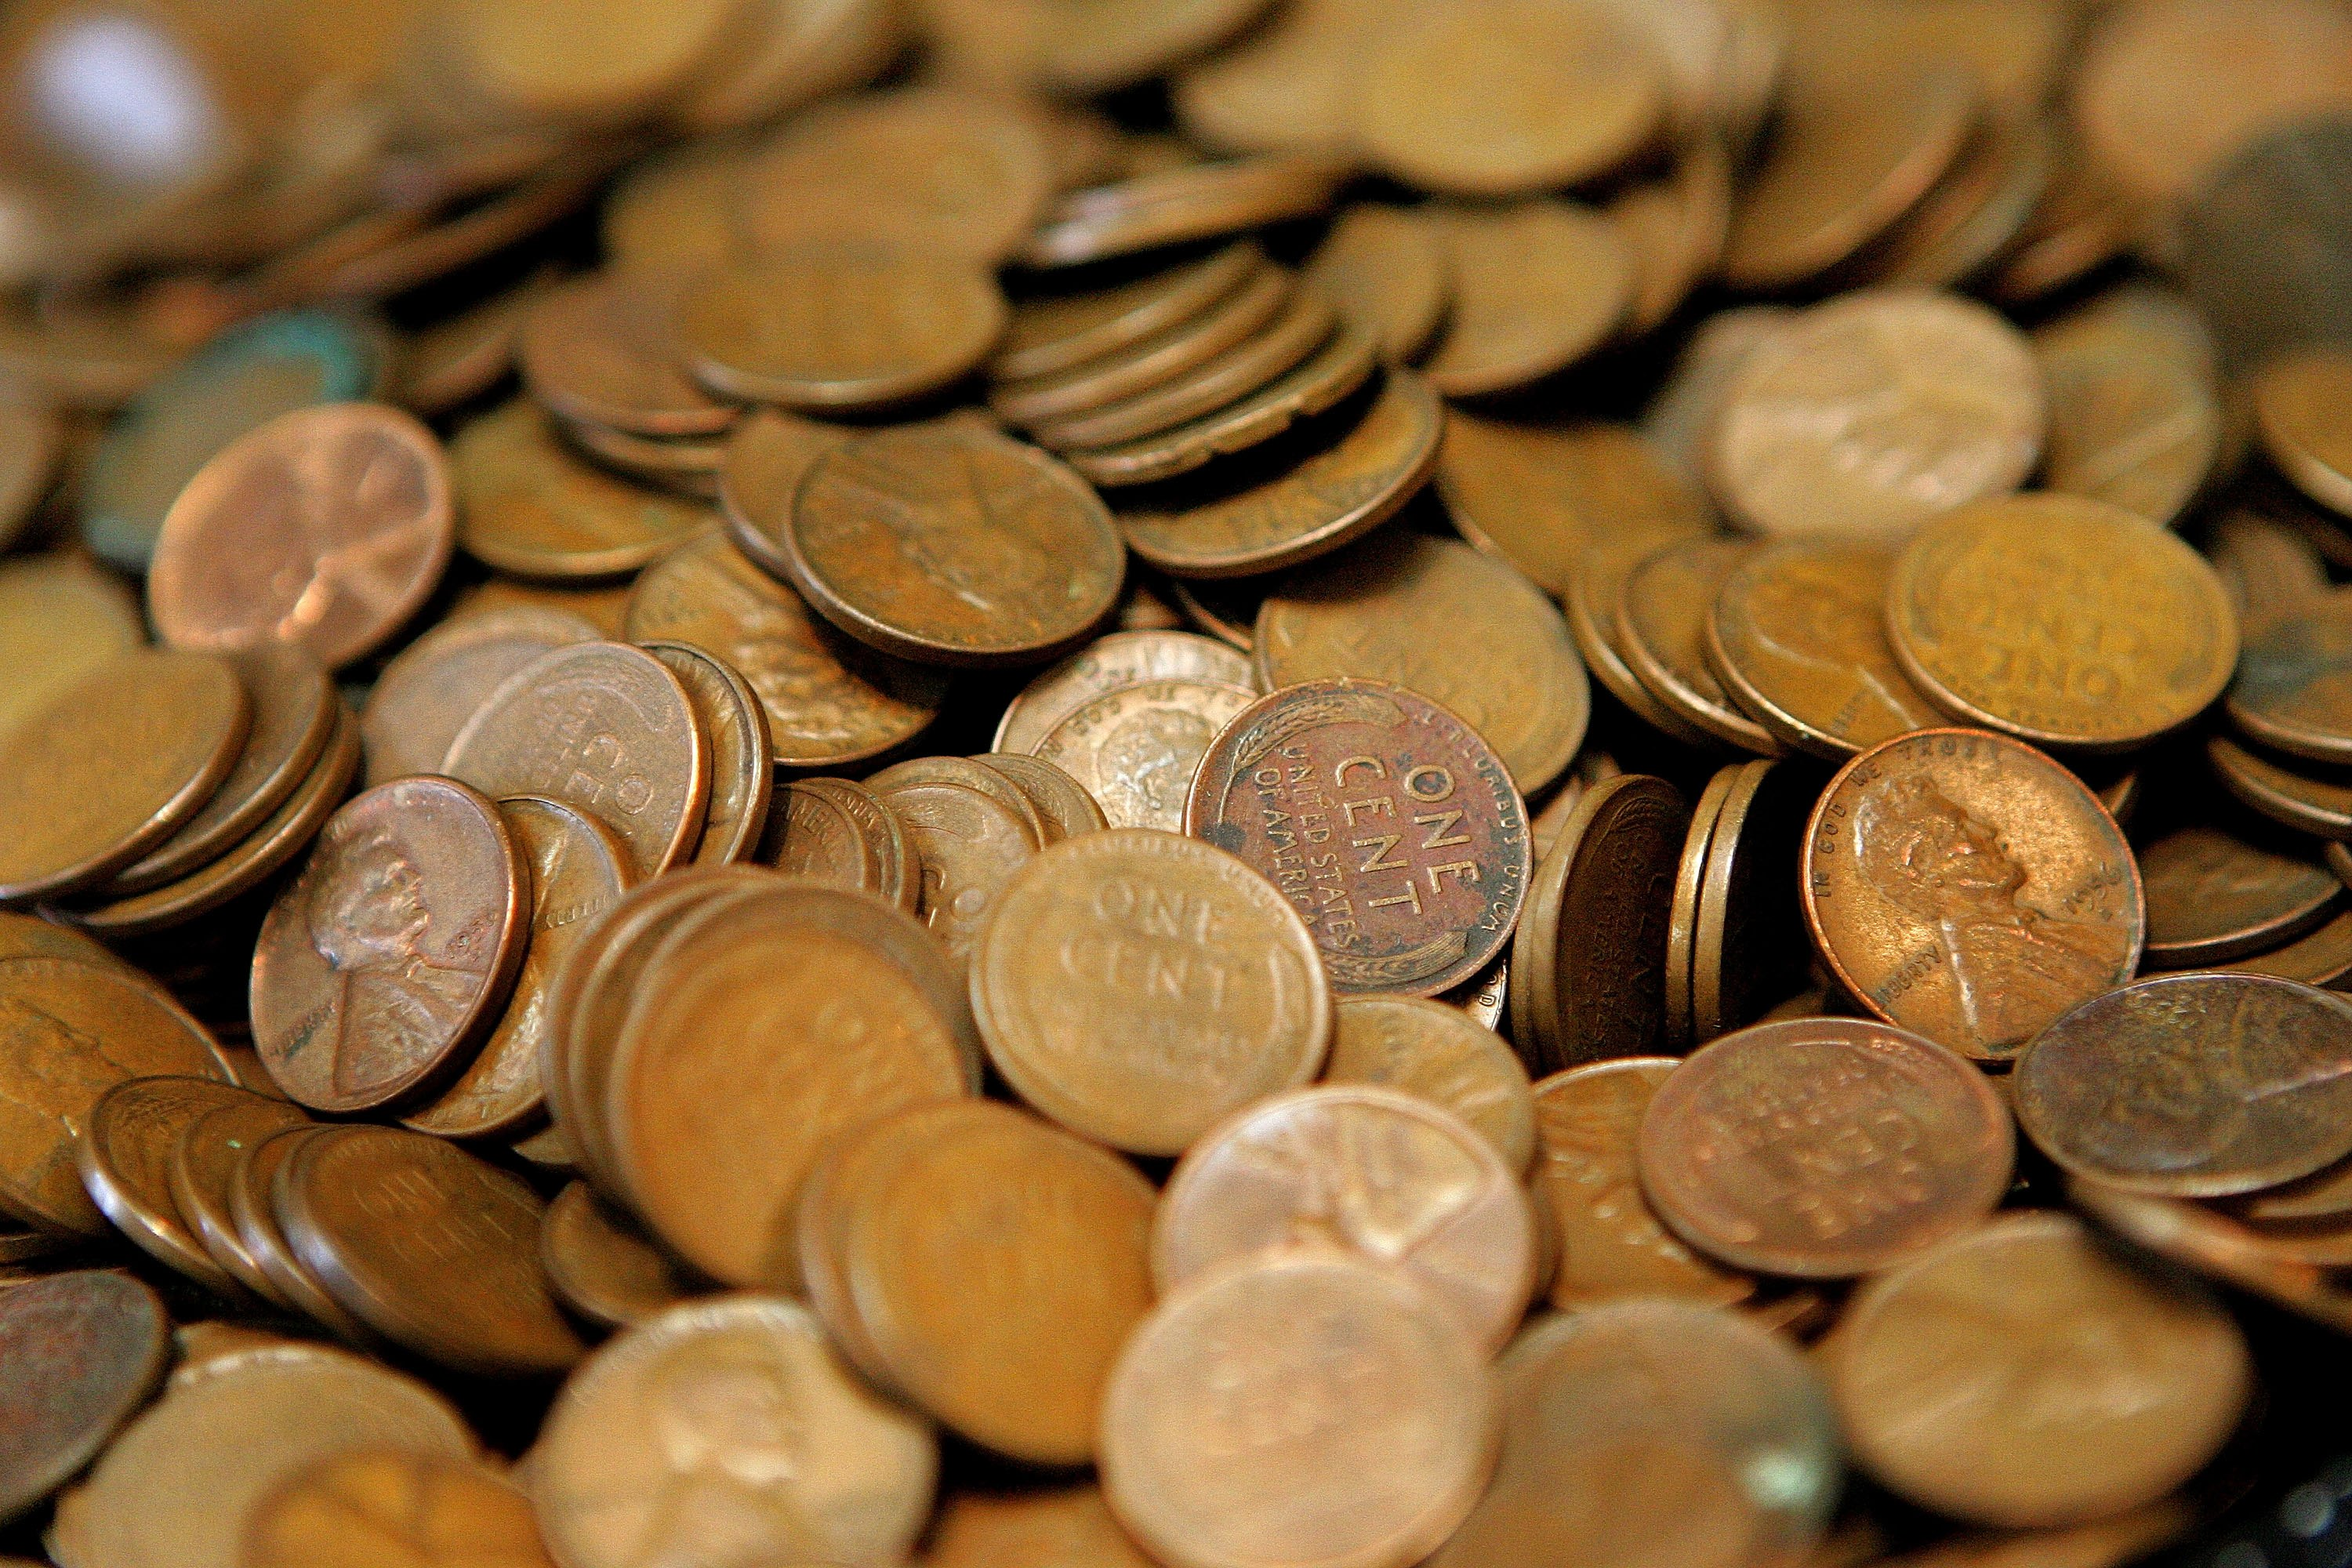 A little act of frugality can pay off beyond the pennies. (Tim Boyle/Getty Images)